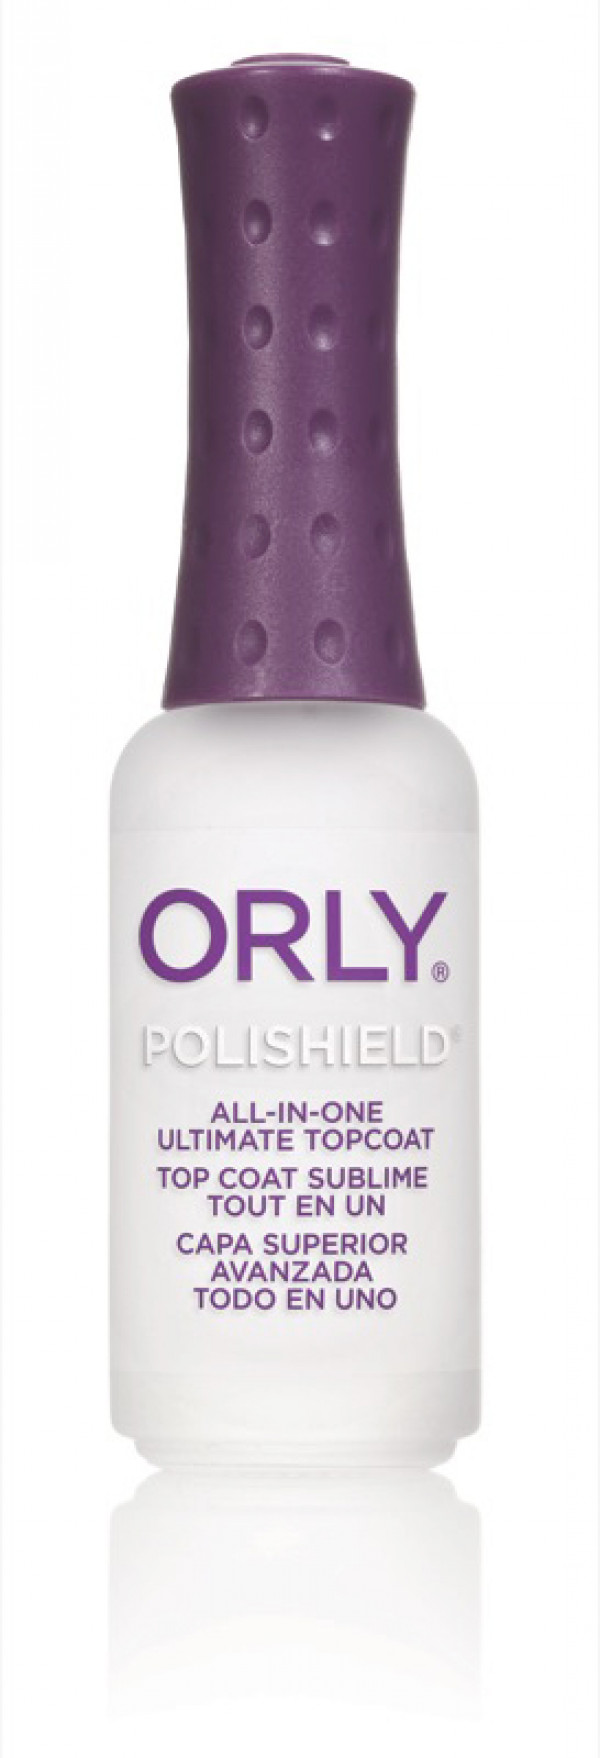 Orly Polishield All in one 9 ml